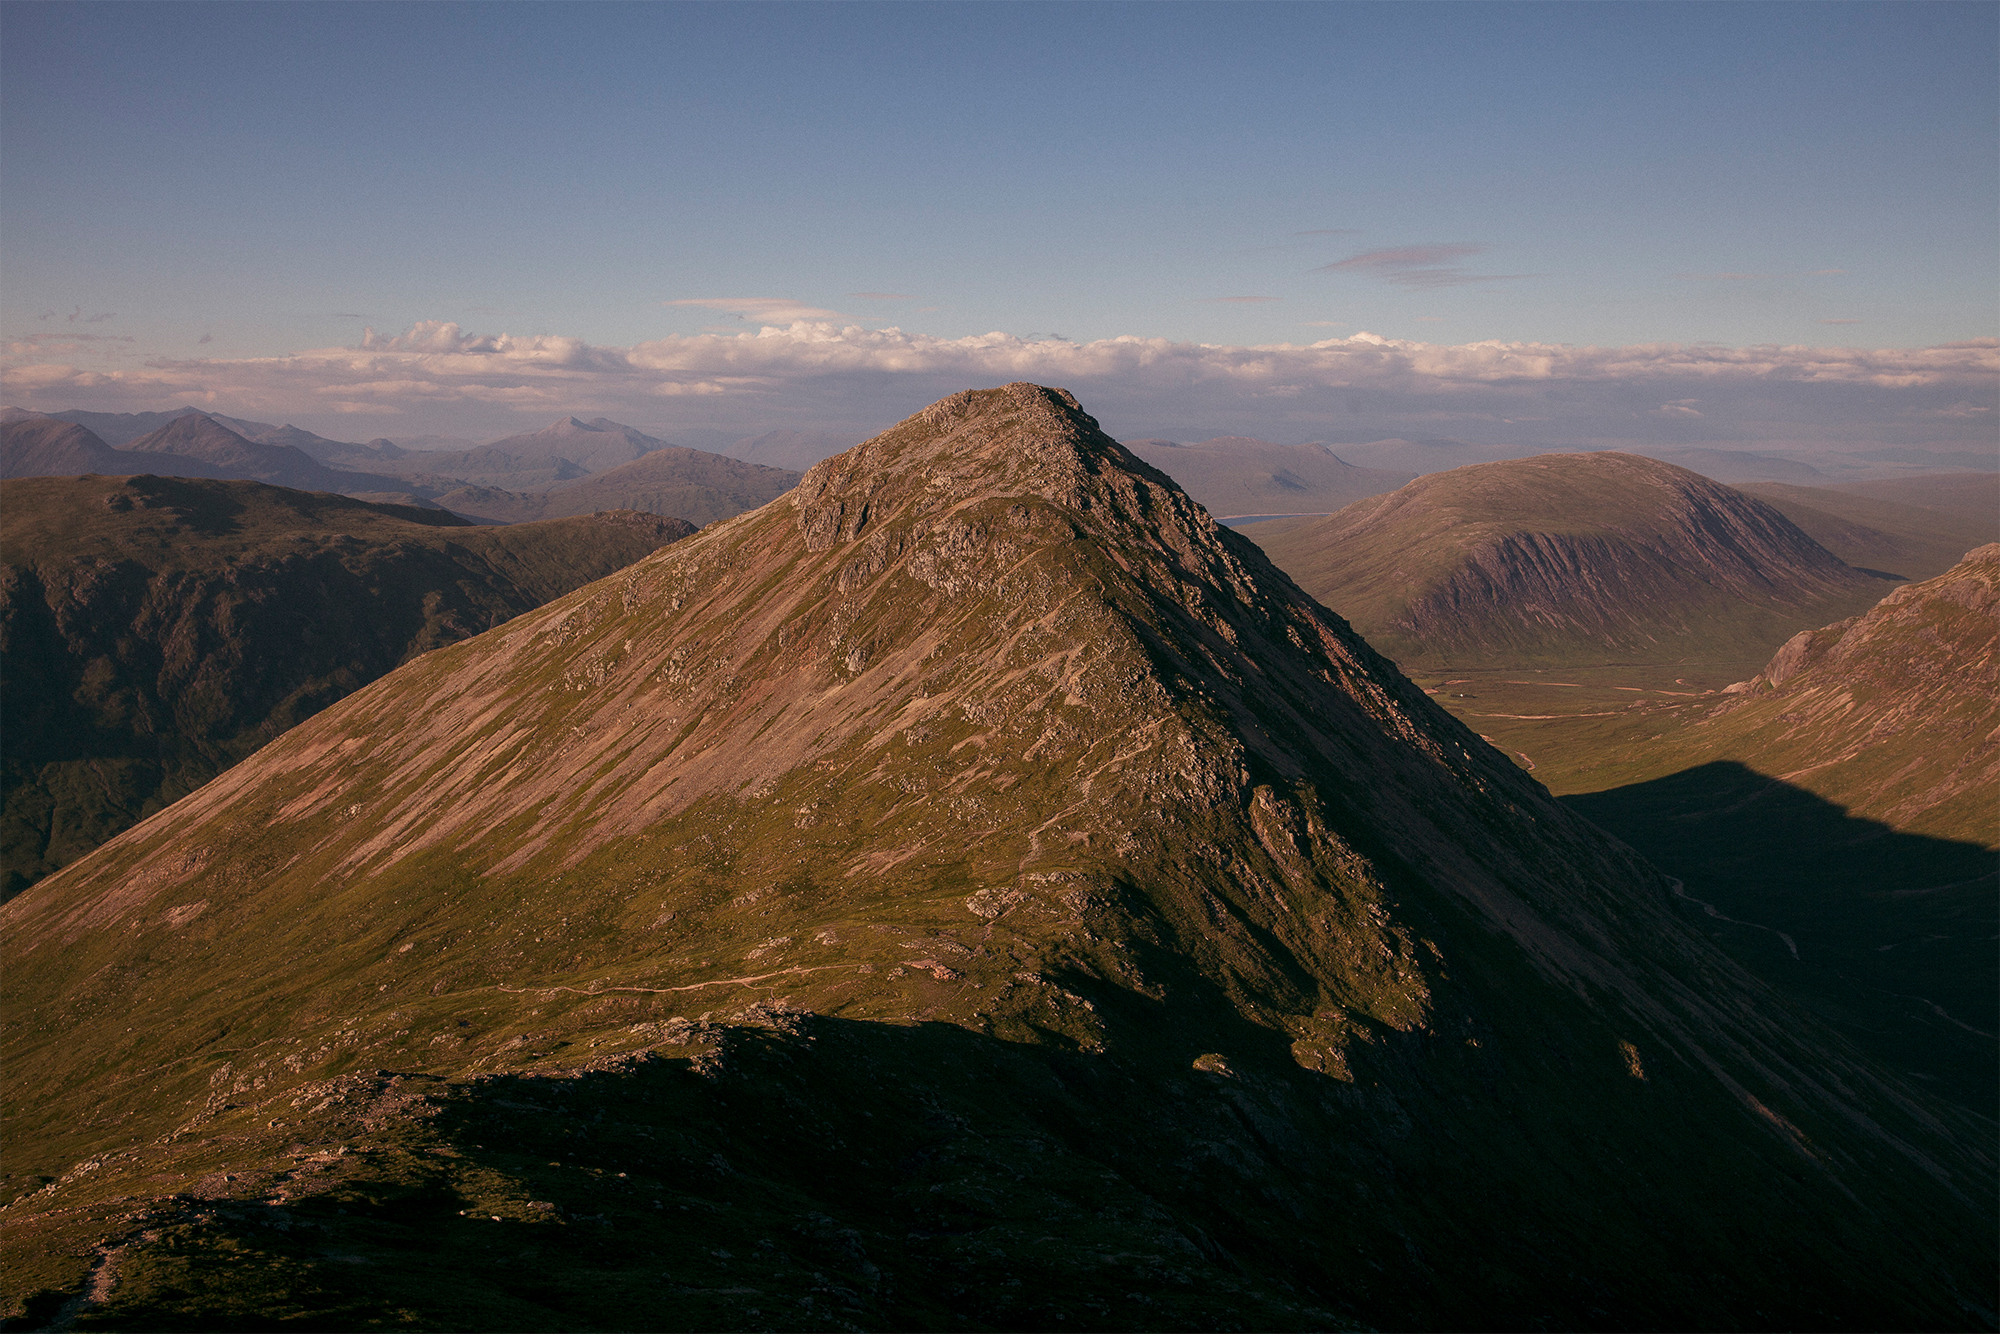 Mid-summer sunset from the summit of Buachaille Etive Beag in Glencoe.